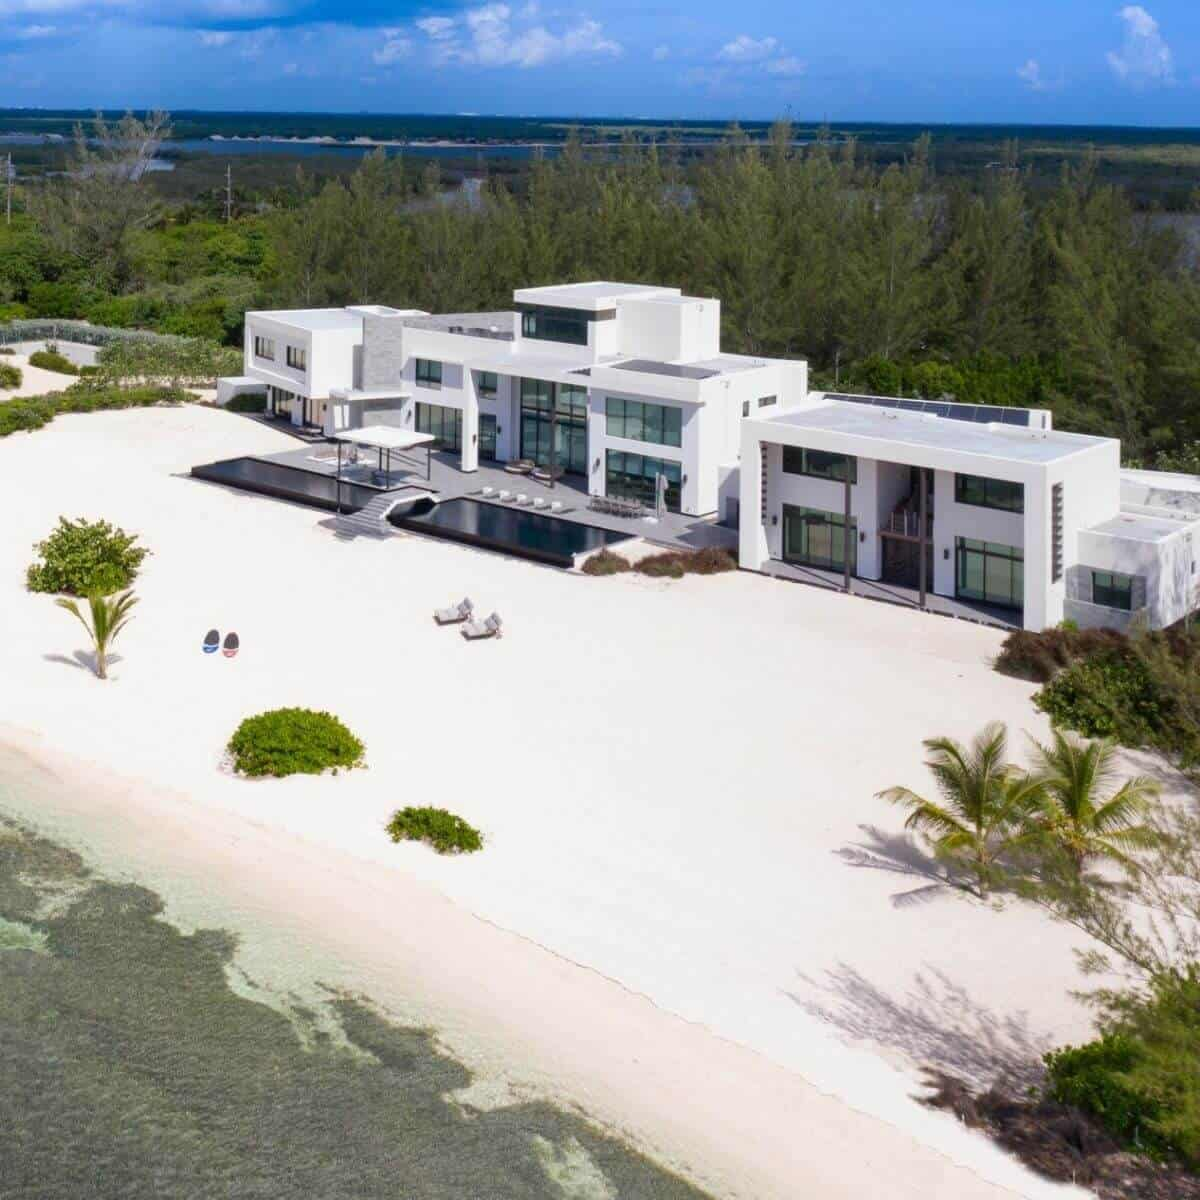 White 3-story modern mansion on a private white-sand beach with trees behind it.